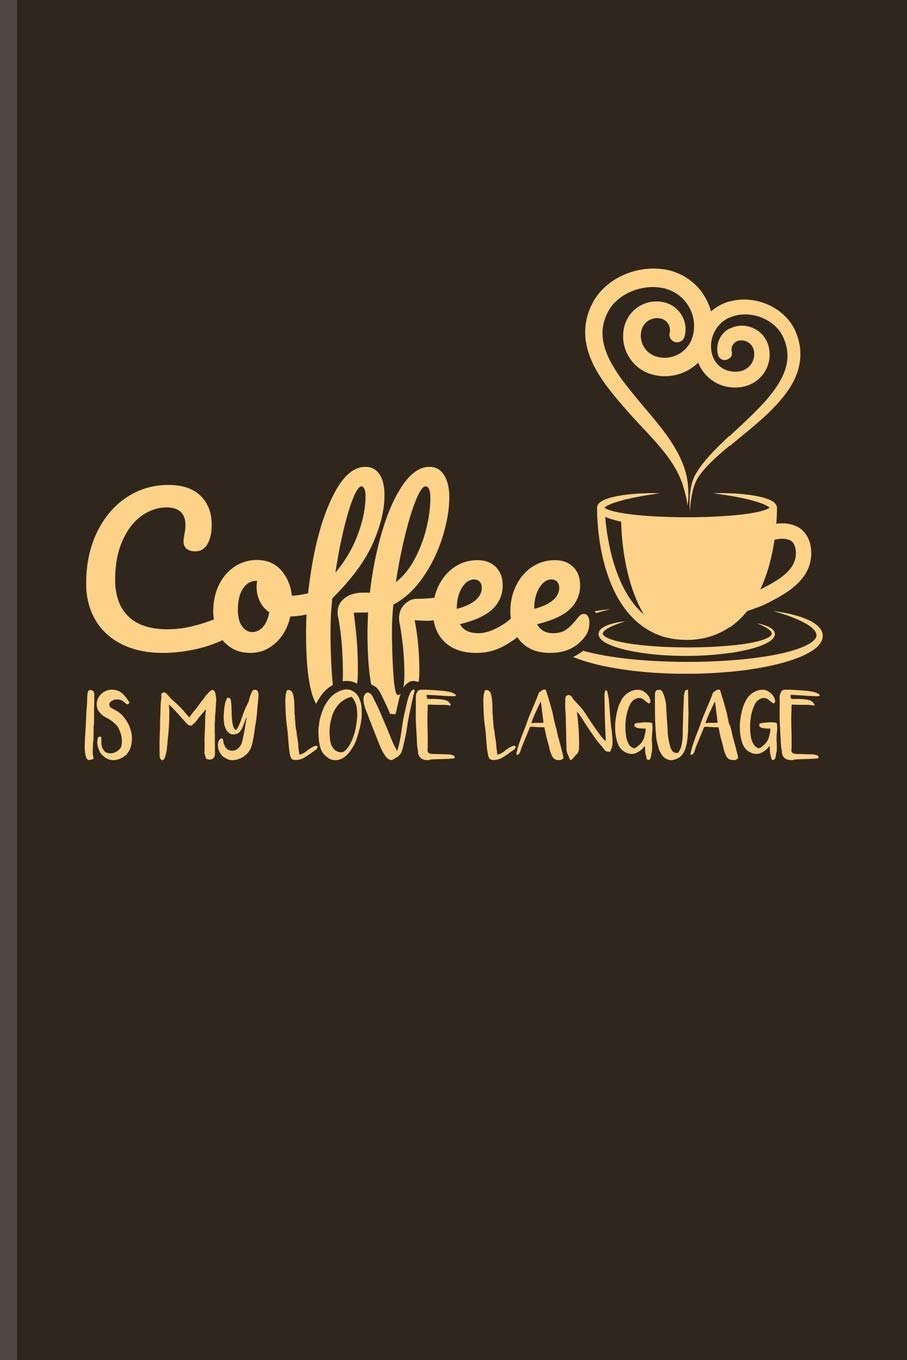 Buy Coffee Is My Love Language Funny Caffeine Quotes Journal Notebook Workbook For Cappuccino Cafe Flavored Beans Fresh Aroma Italian Espresso Drinking Fans 6x9 100 Graph Paper